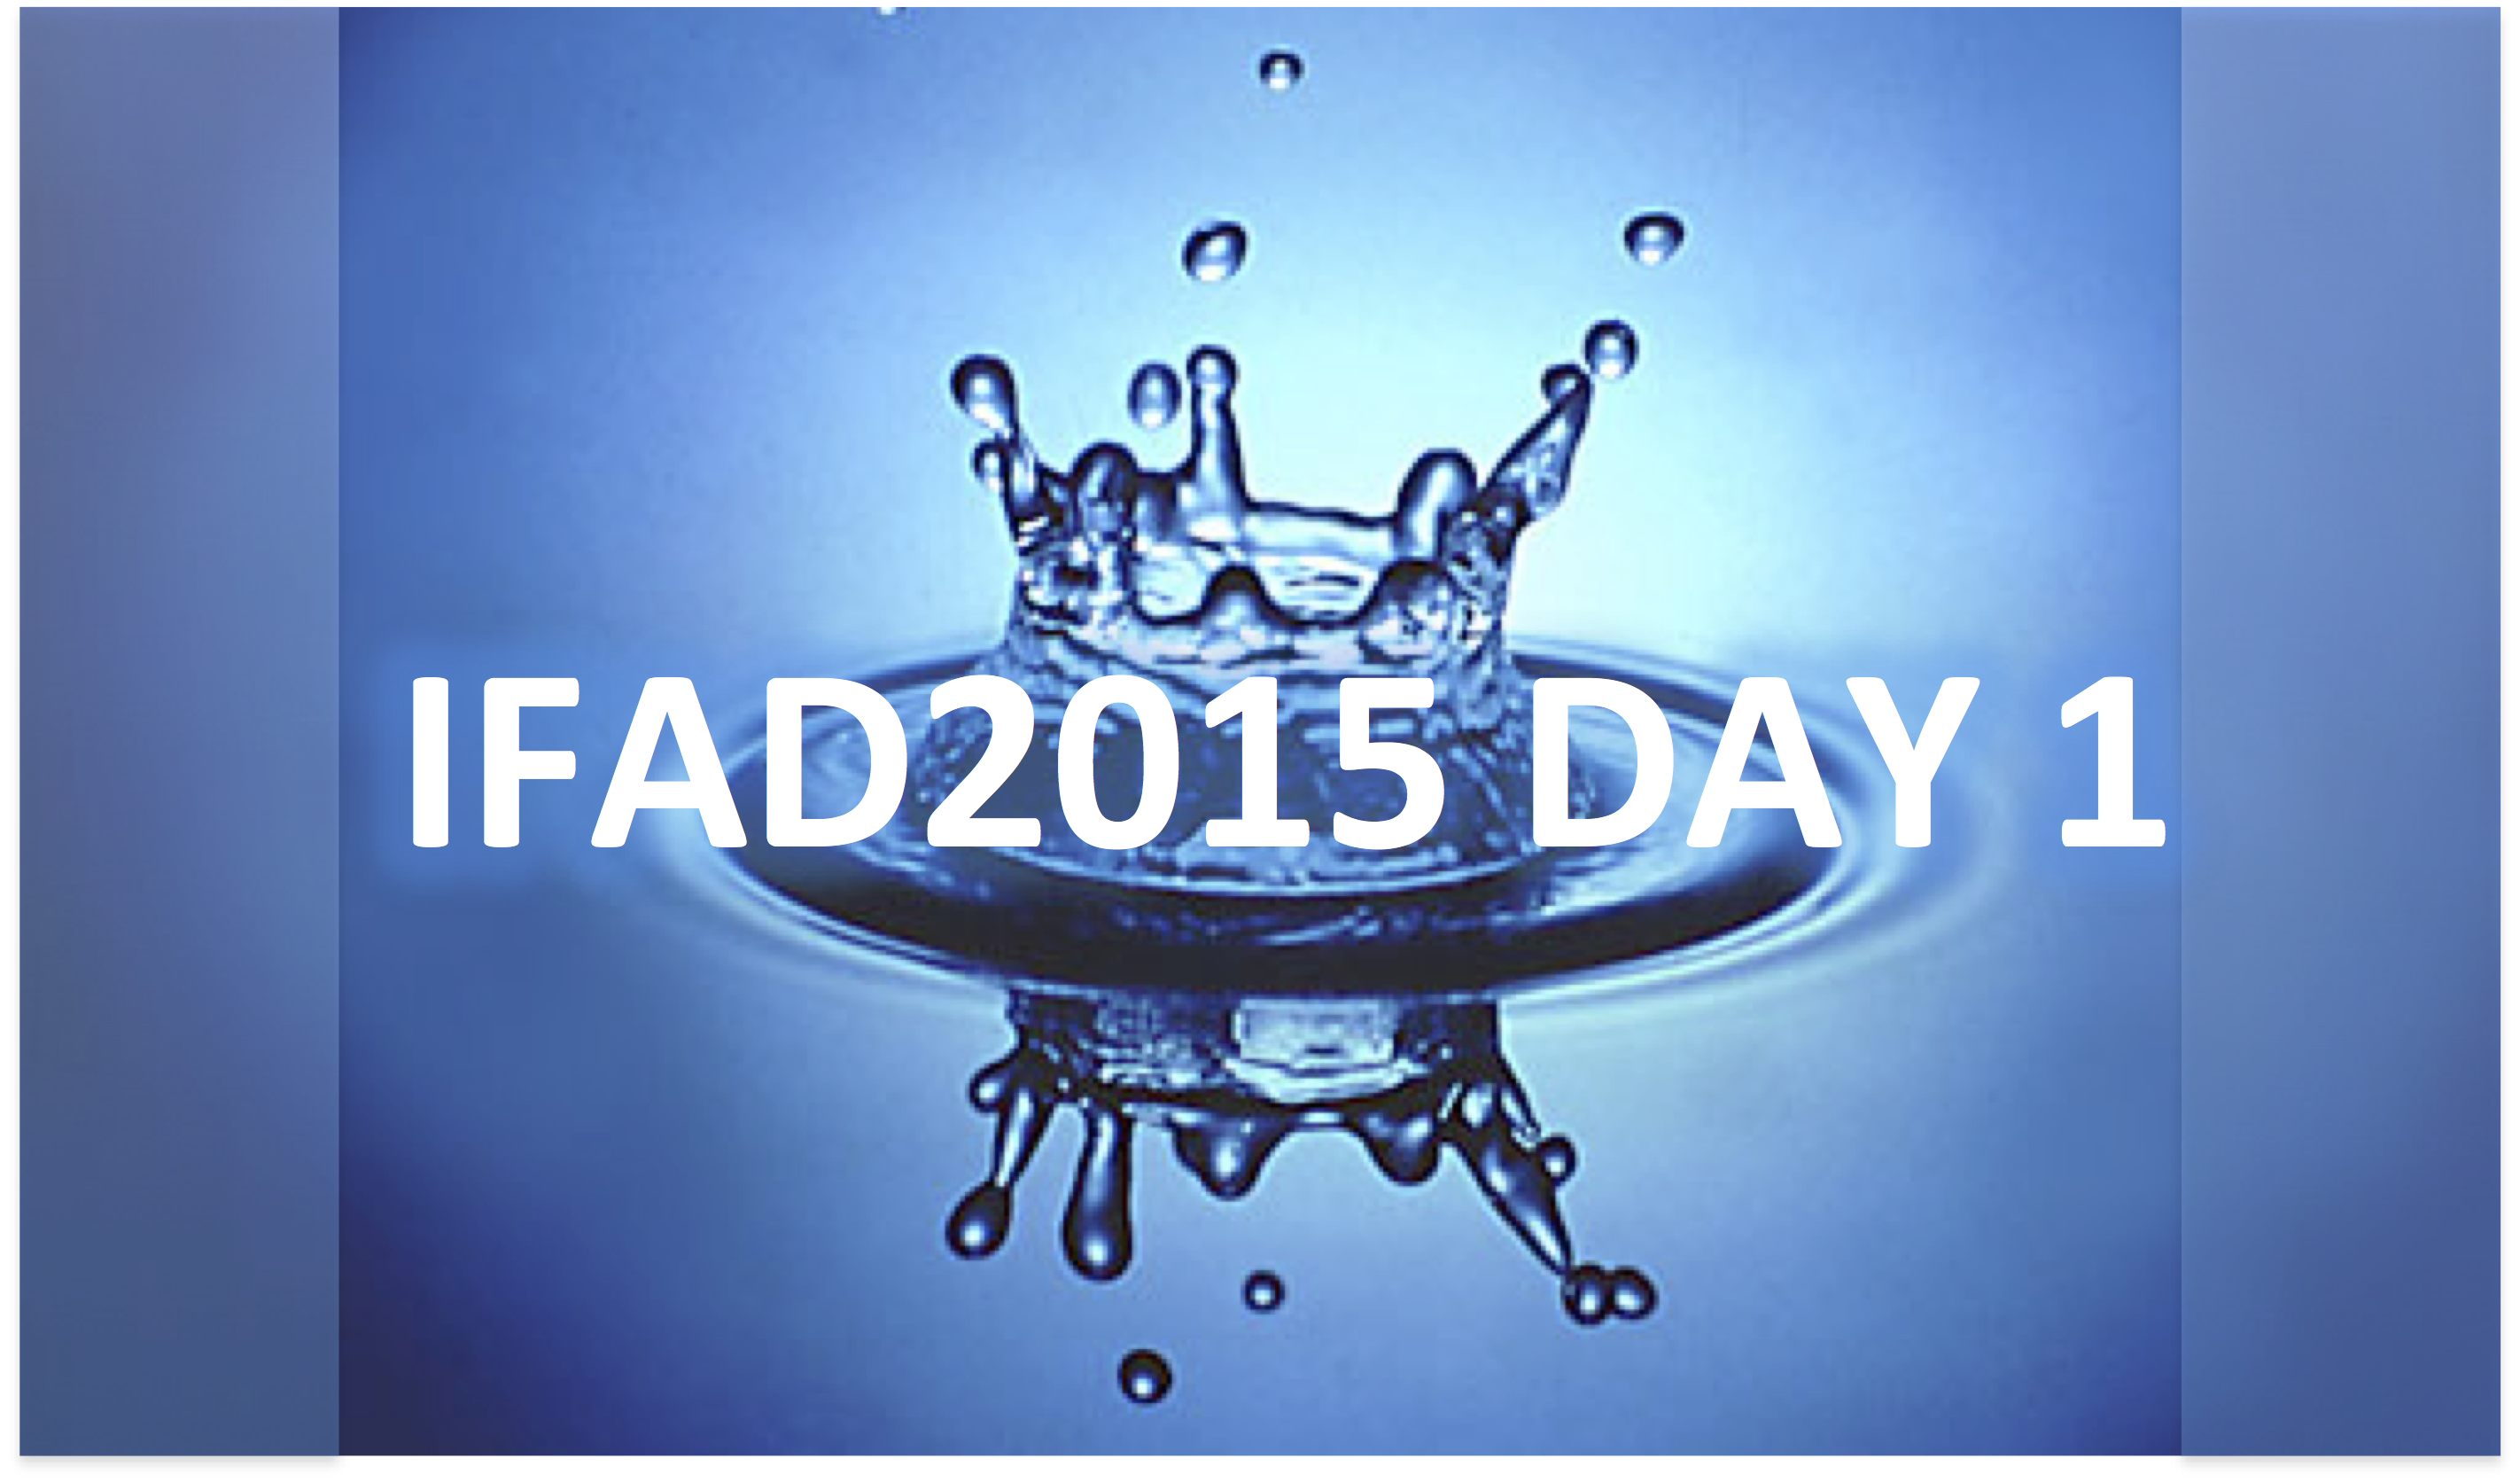 IFAD 2015 Day 1